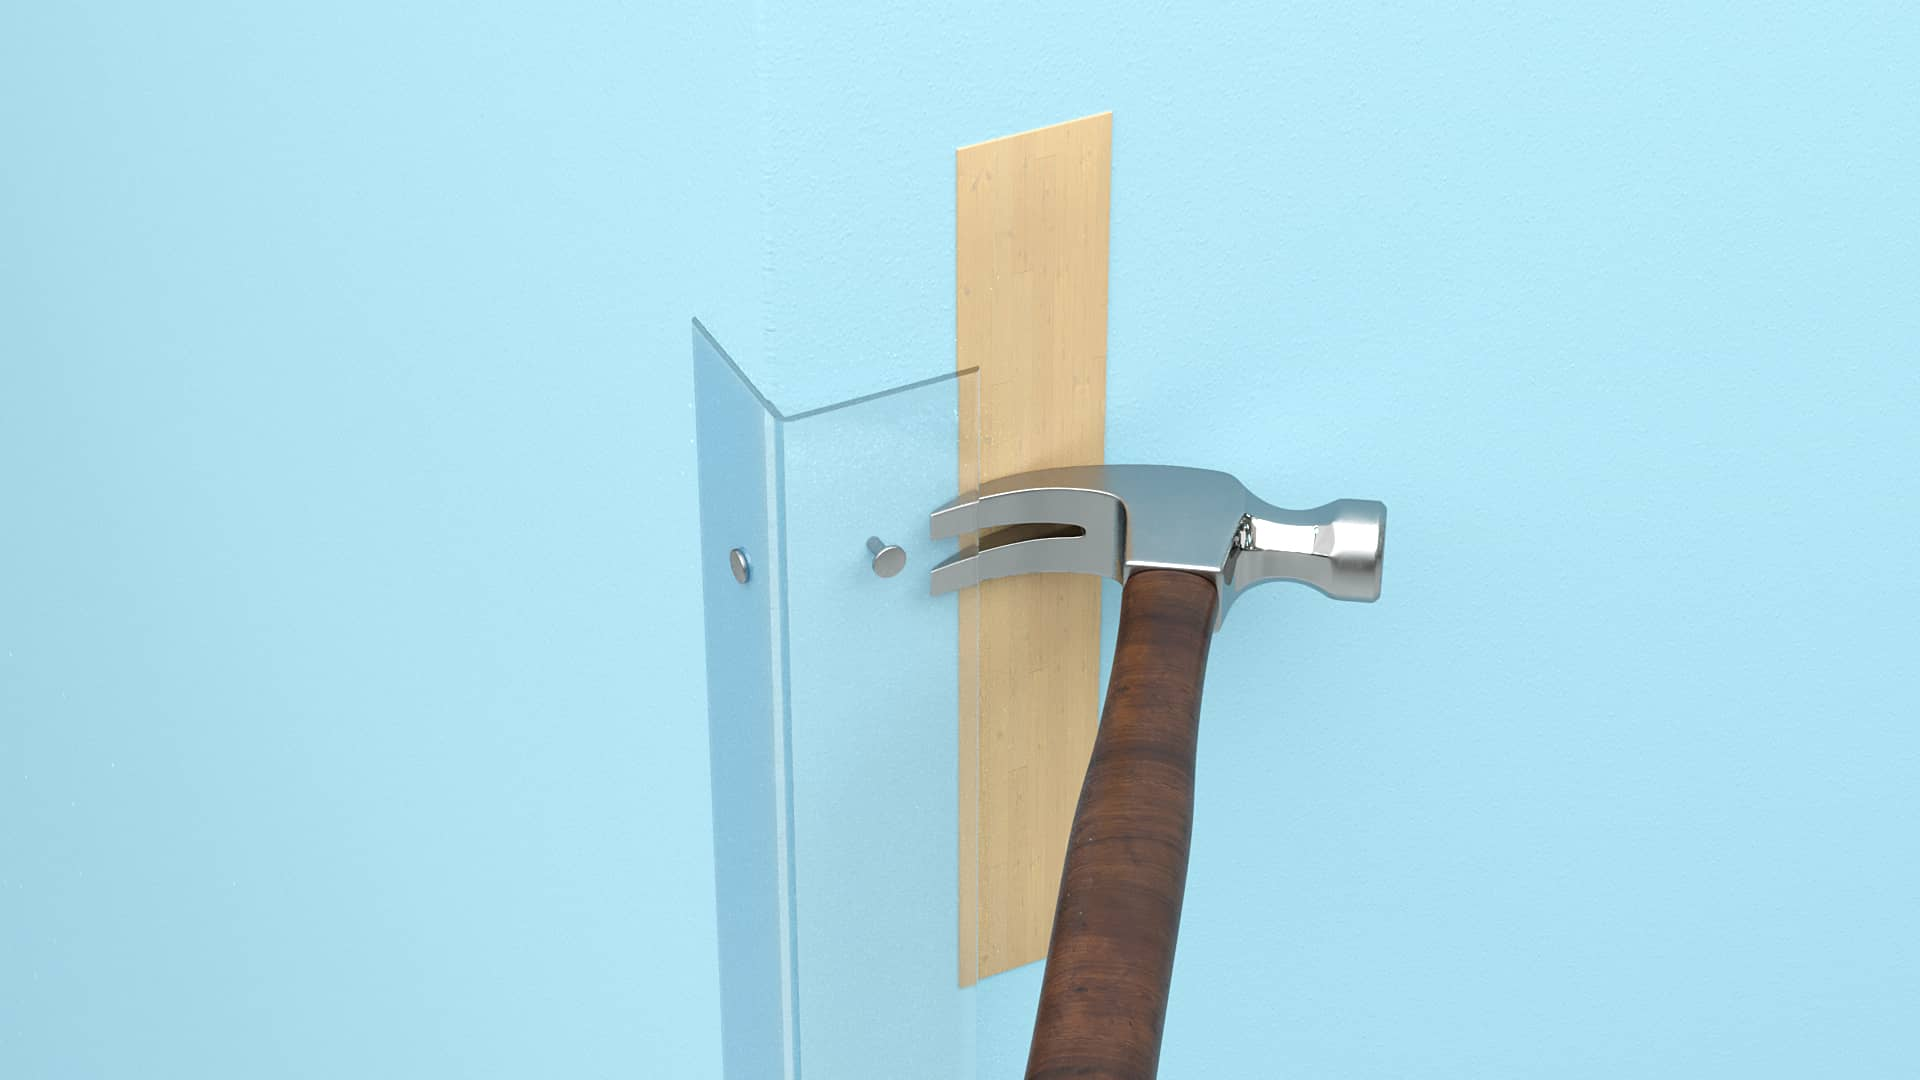 Removing corner guards with nails